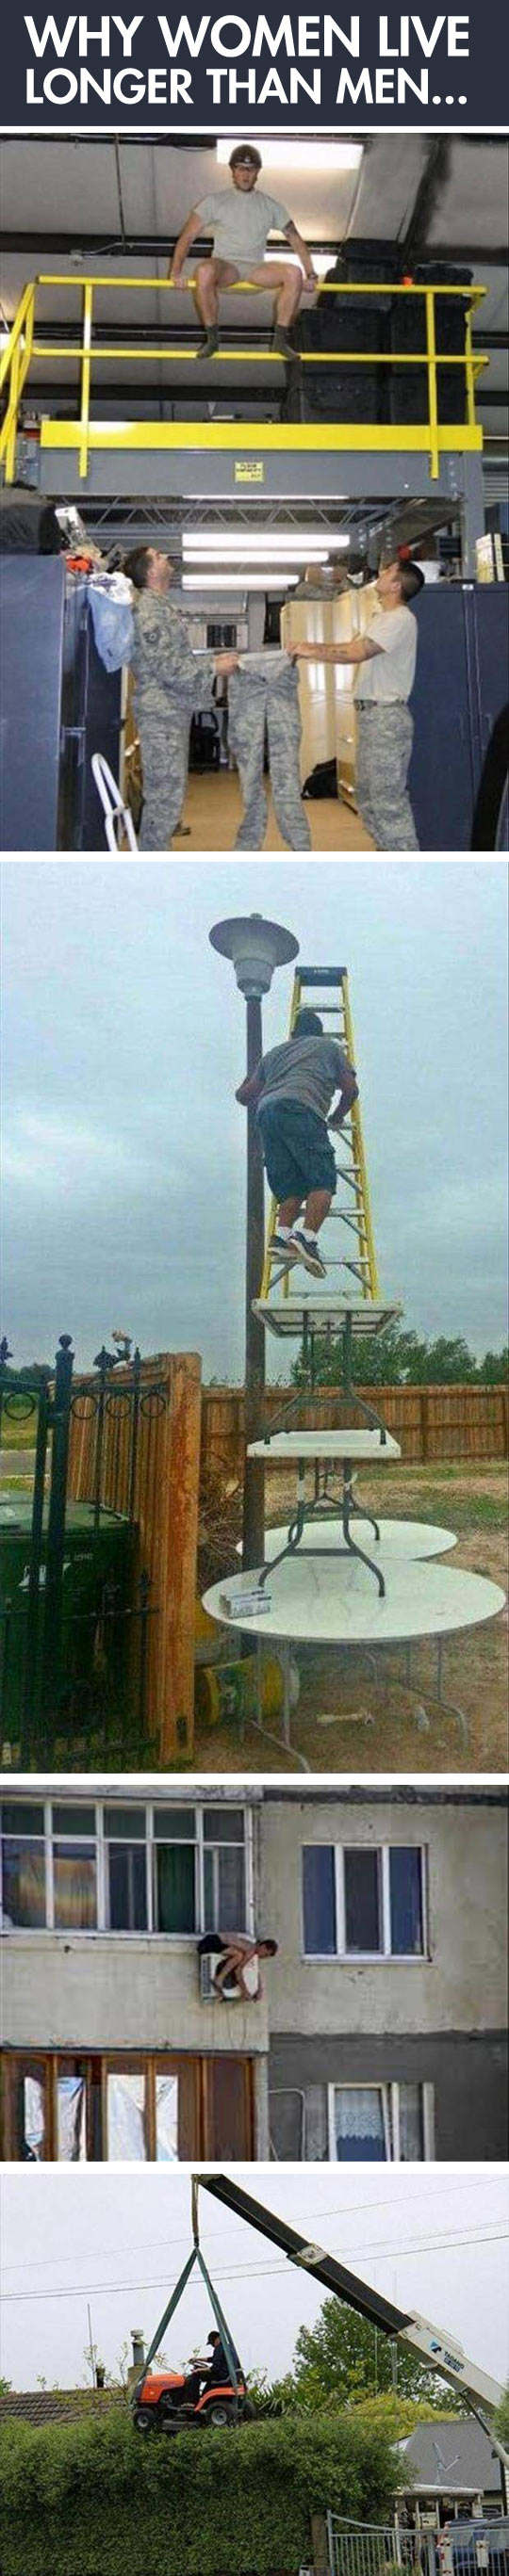 This is why women live longer than men...